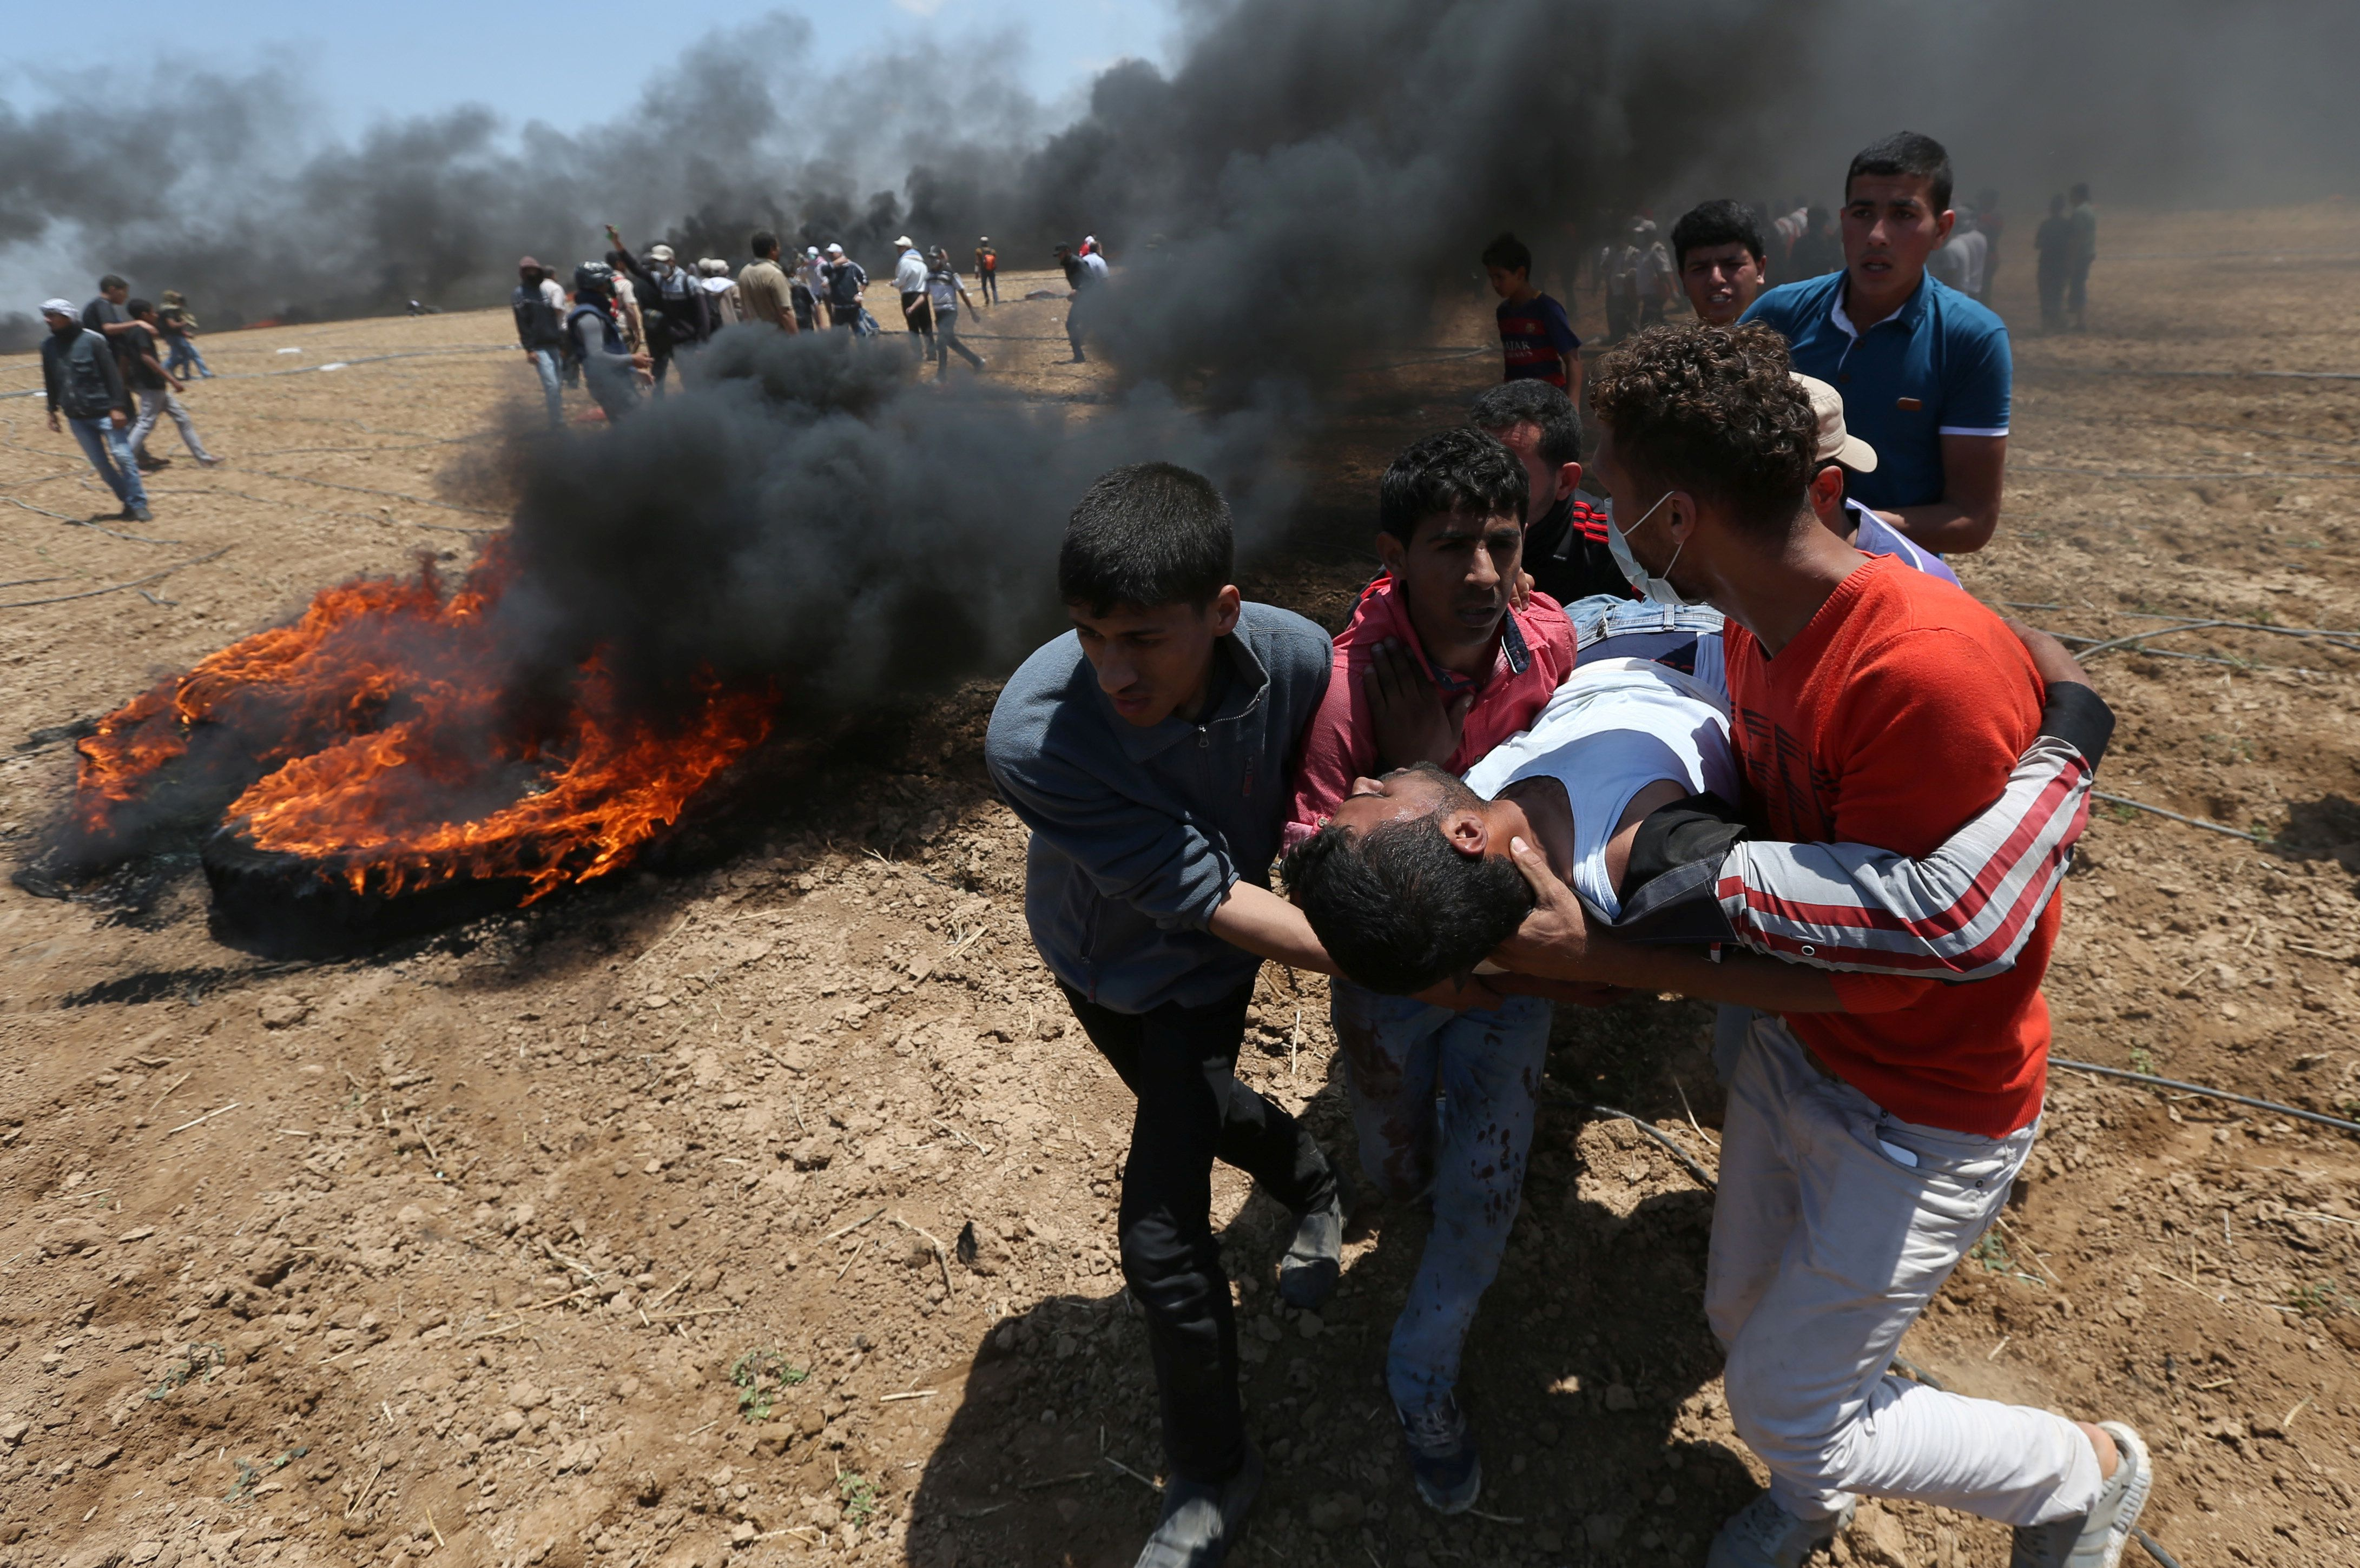 A wounded Palestinian demonstrator is evacuated at the Israel-Gaza border, May 14, 2018.